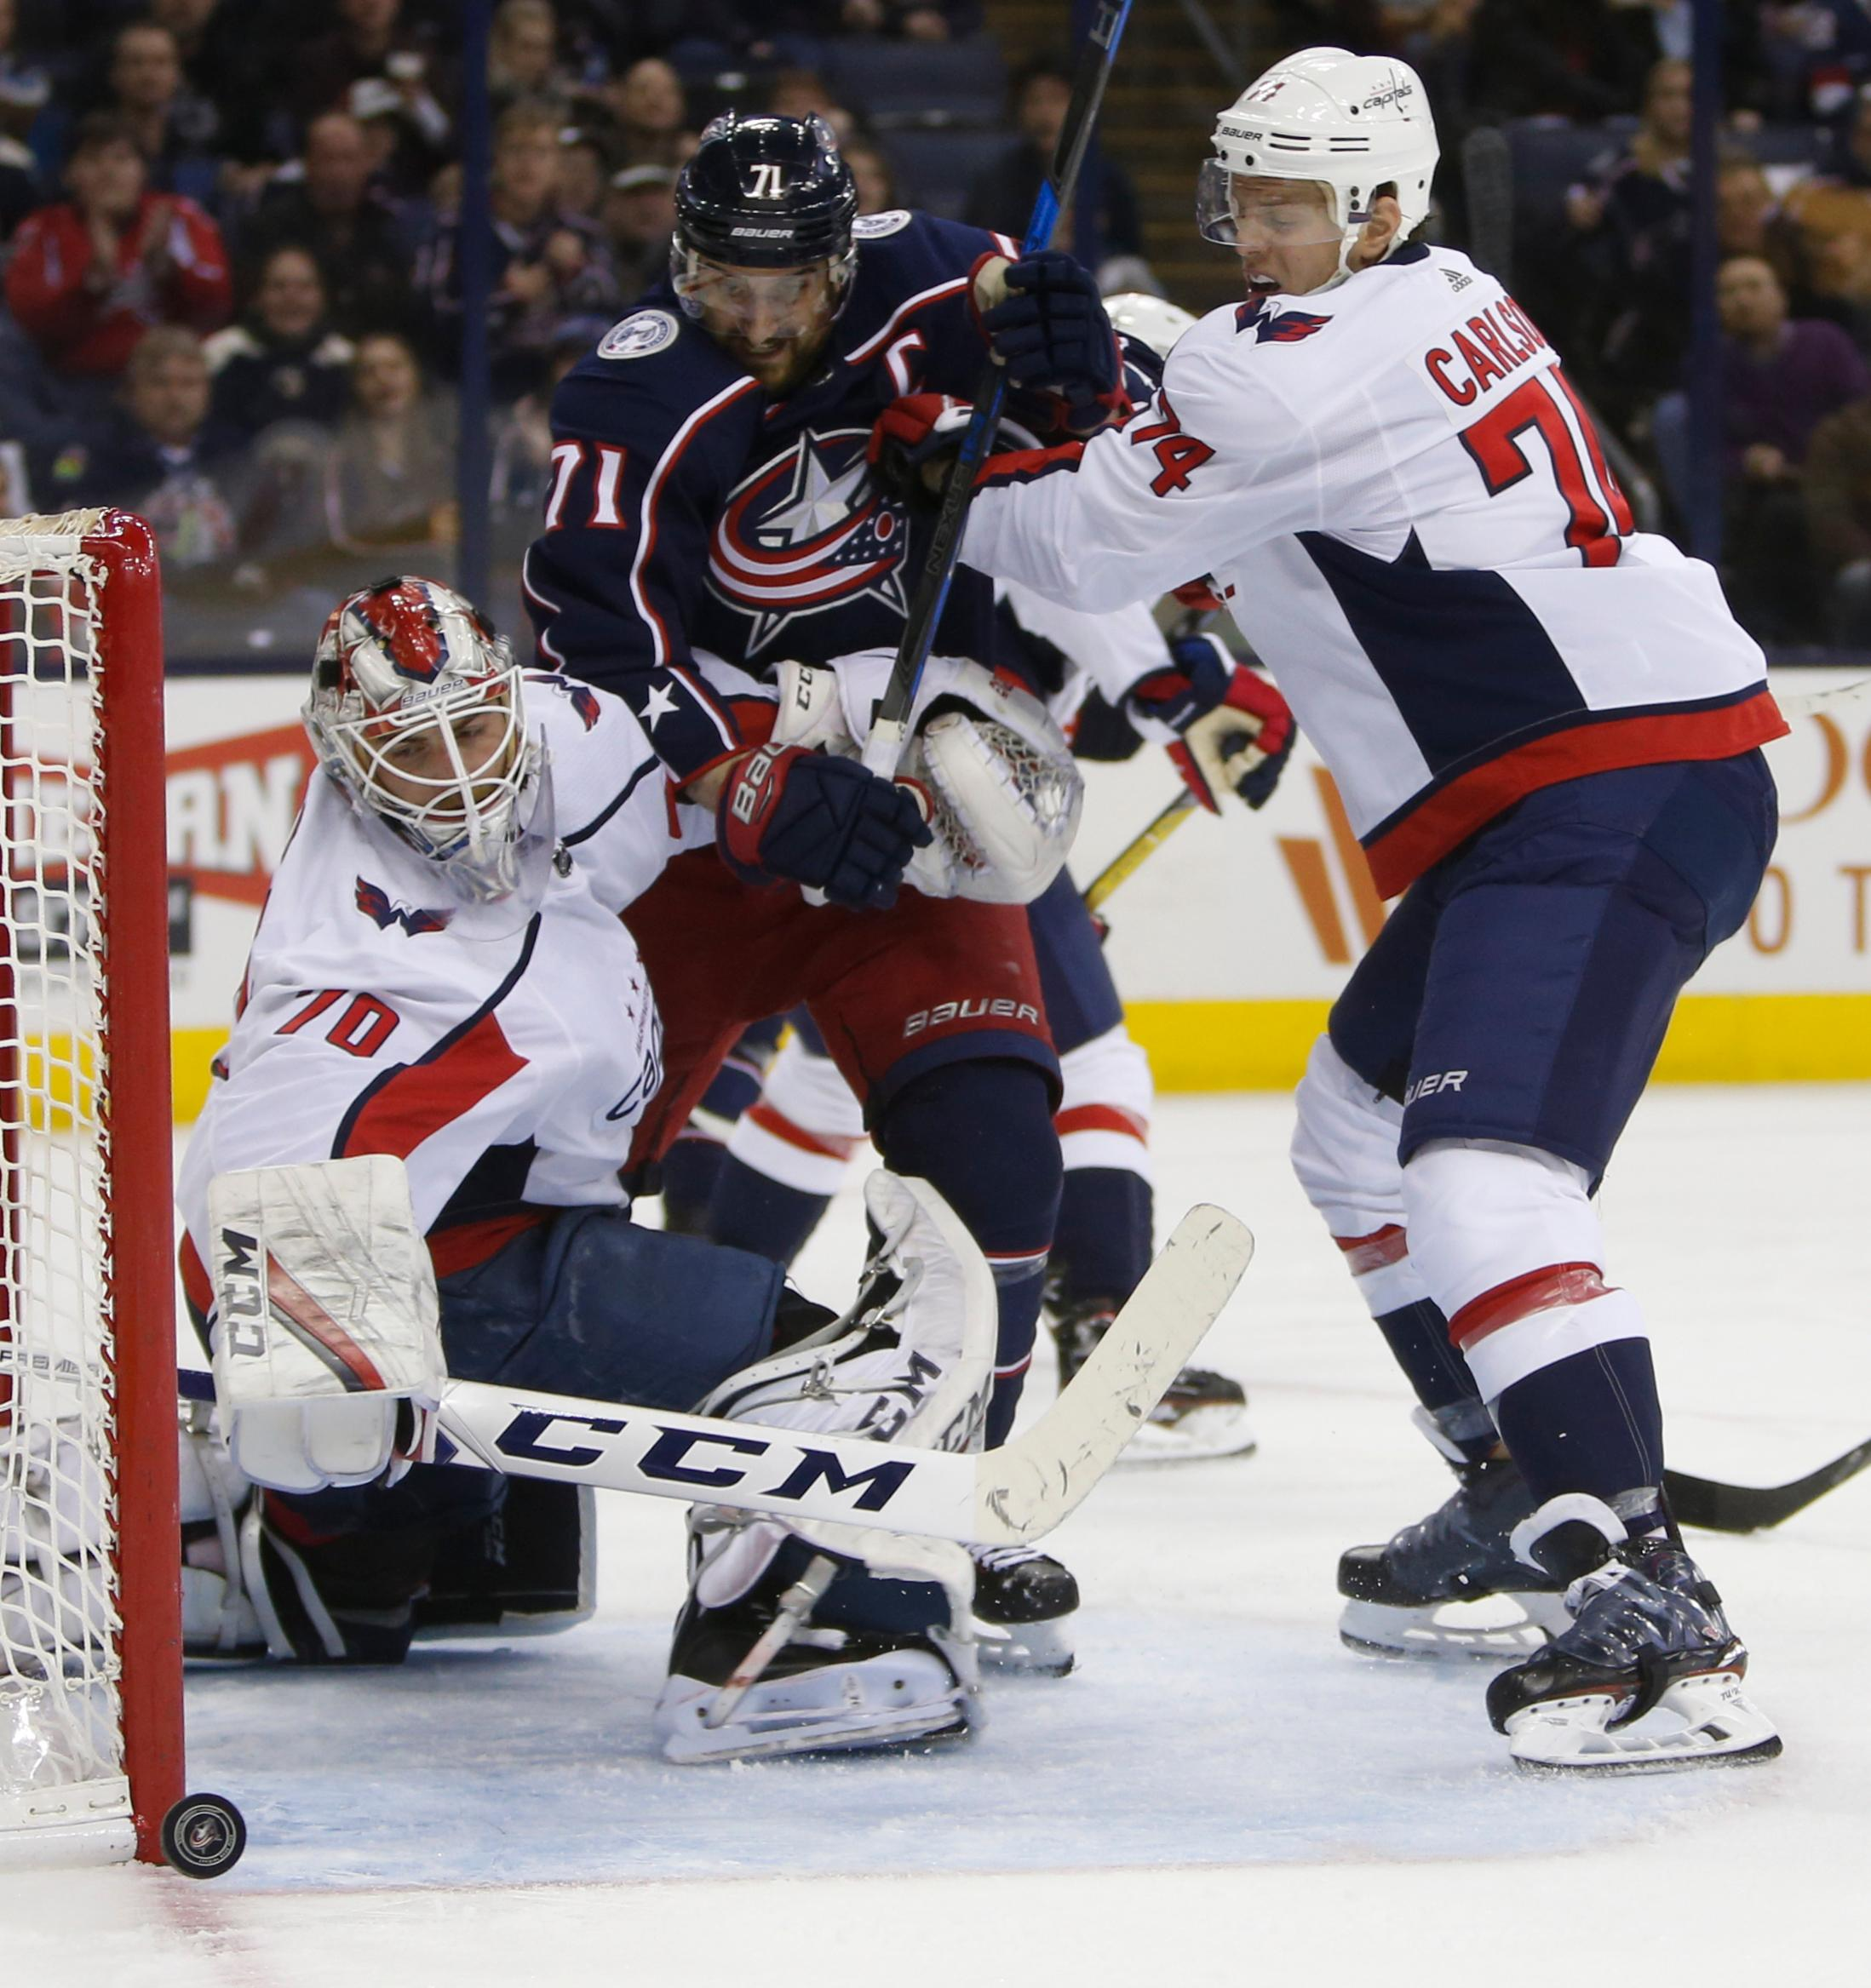 Washington Capitals' Braden Holtby, left, makes a save as teammate John Carlson, right, and Columbus Blue Jackets' Nick Foligno fight for position during the second period of an NHL hockey game Tuesday, Feb. 6, 2018, in Columbus, Ohio. (AP Photo/Jay LaPrete)